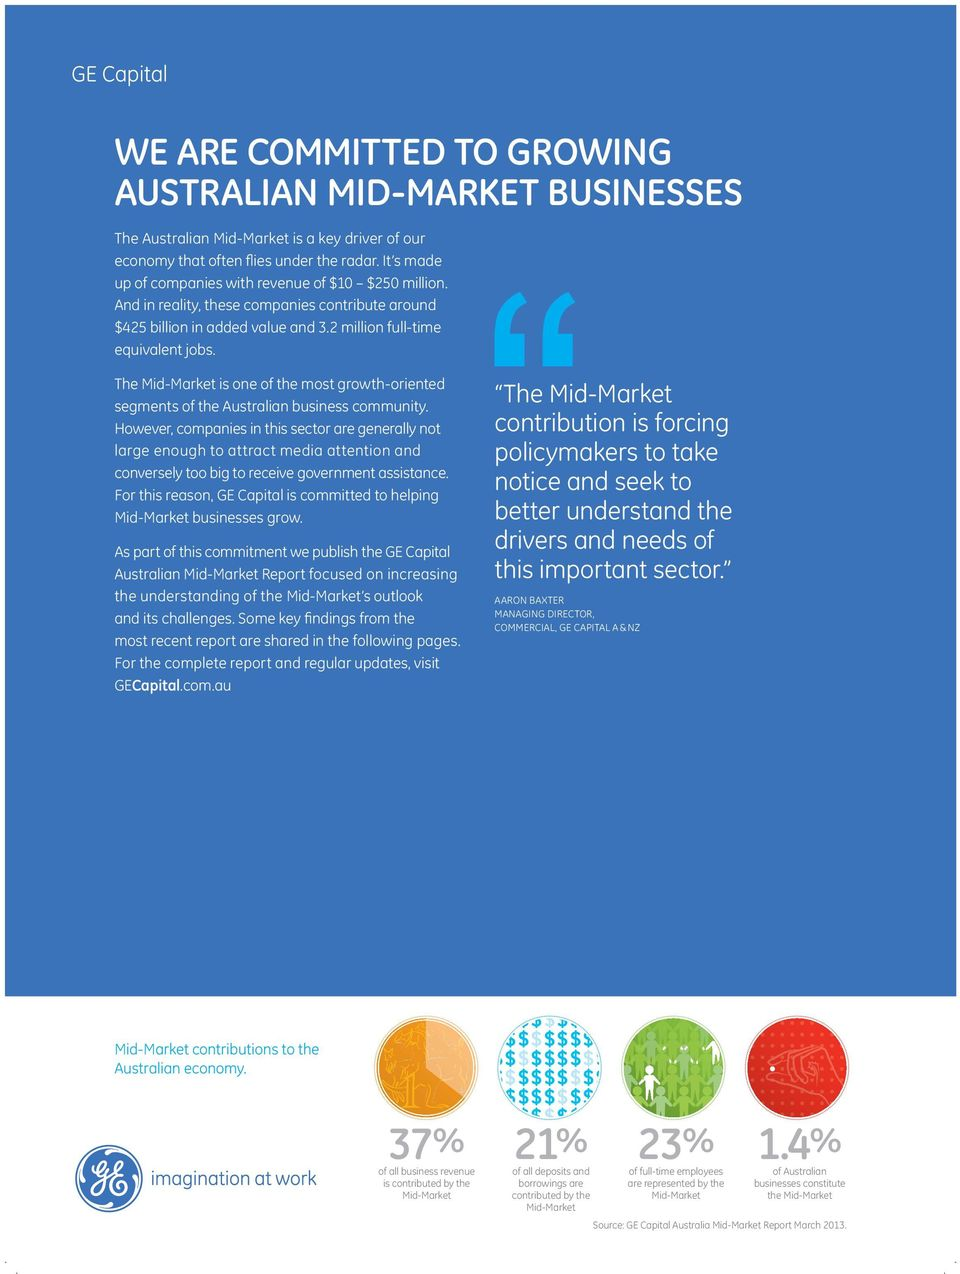 The Mid-Market is one of the most growth-oriented segments of the Australian business community.